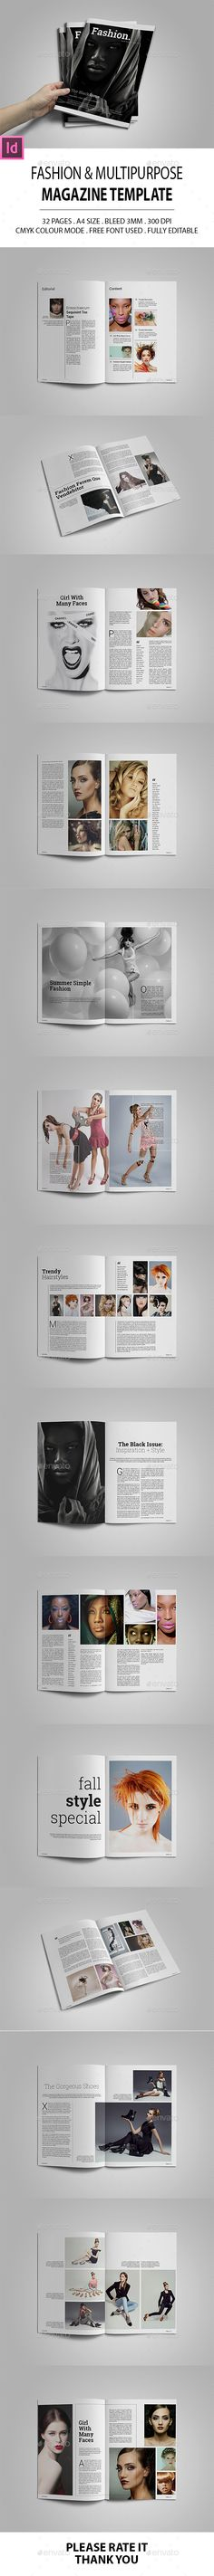 Fashion & Multipurpose Magazine Template InDesign INDD. Download here: http://graphicriver.net/item/fashion-multipurpose-magazine-template/16261129?ref=ksioks